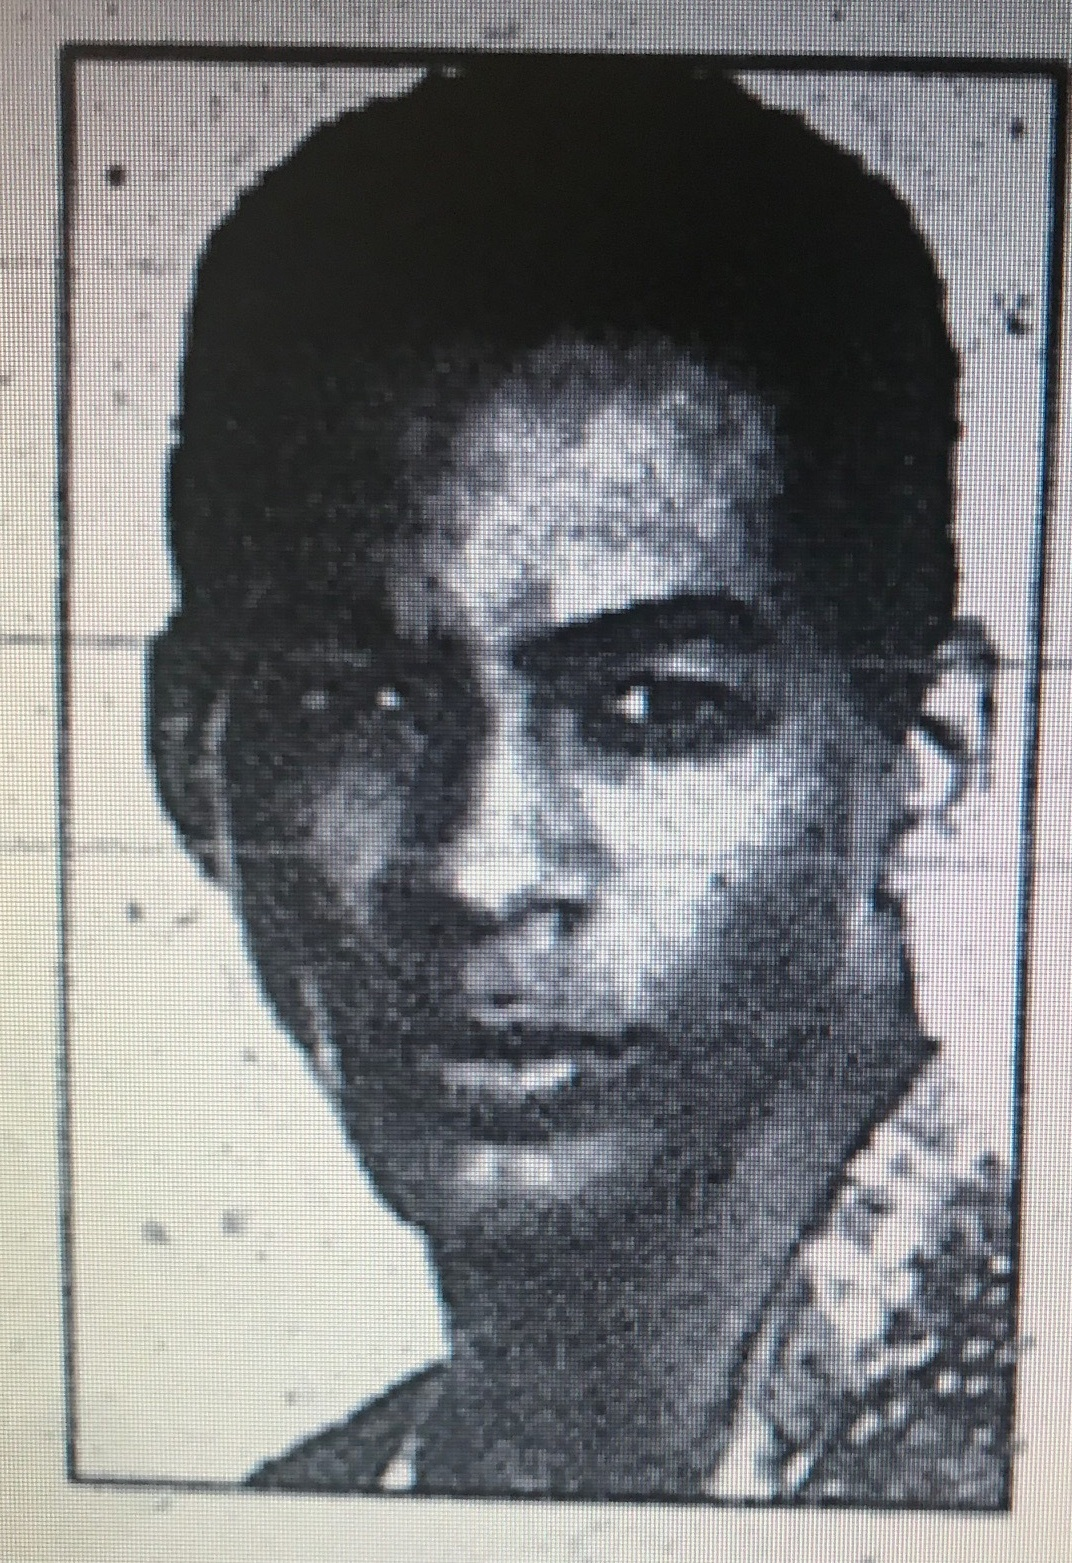 """Russell Warfield - Russell Warfield, a gymnastics standout at Franklin High School who became a """"cast member in the original touring company of the Broadway musical, 'CATS.'"""" He appeared in commercials, pursued a modeling career, and was a show coordinator. He traveled extensively around the world."""